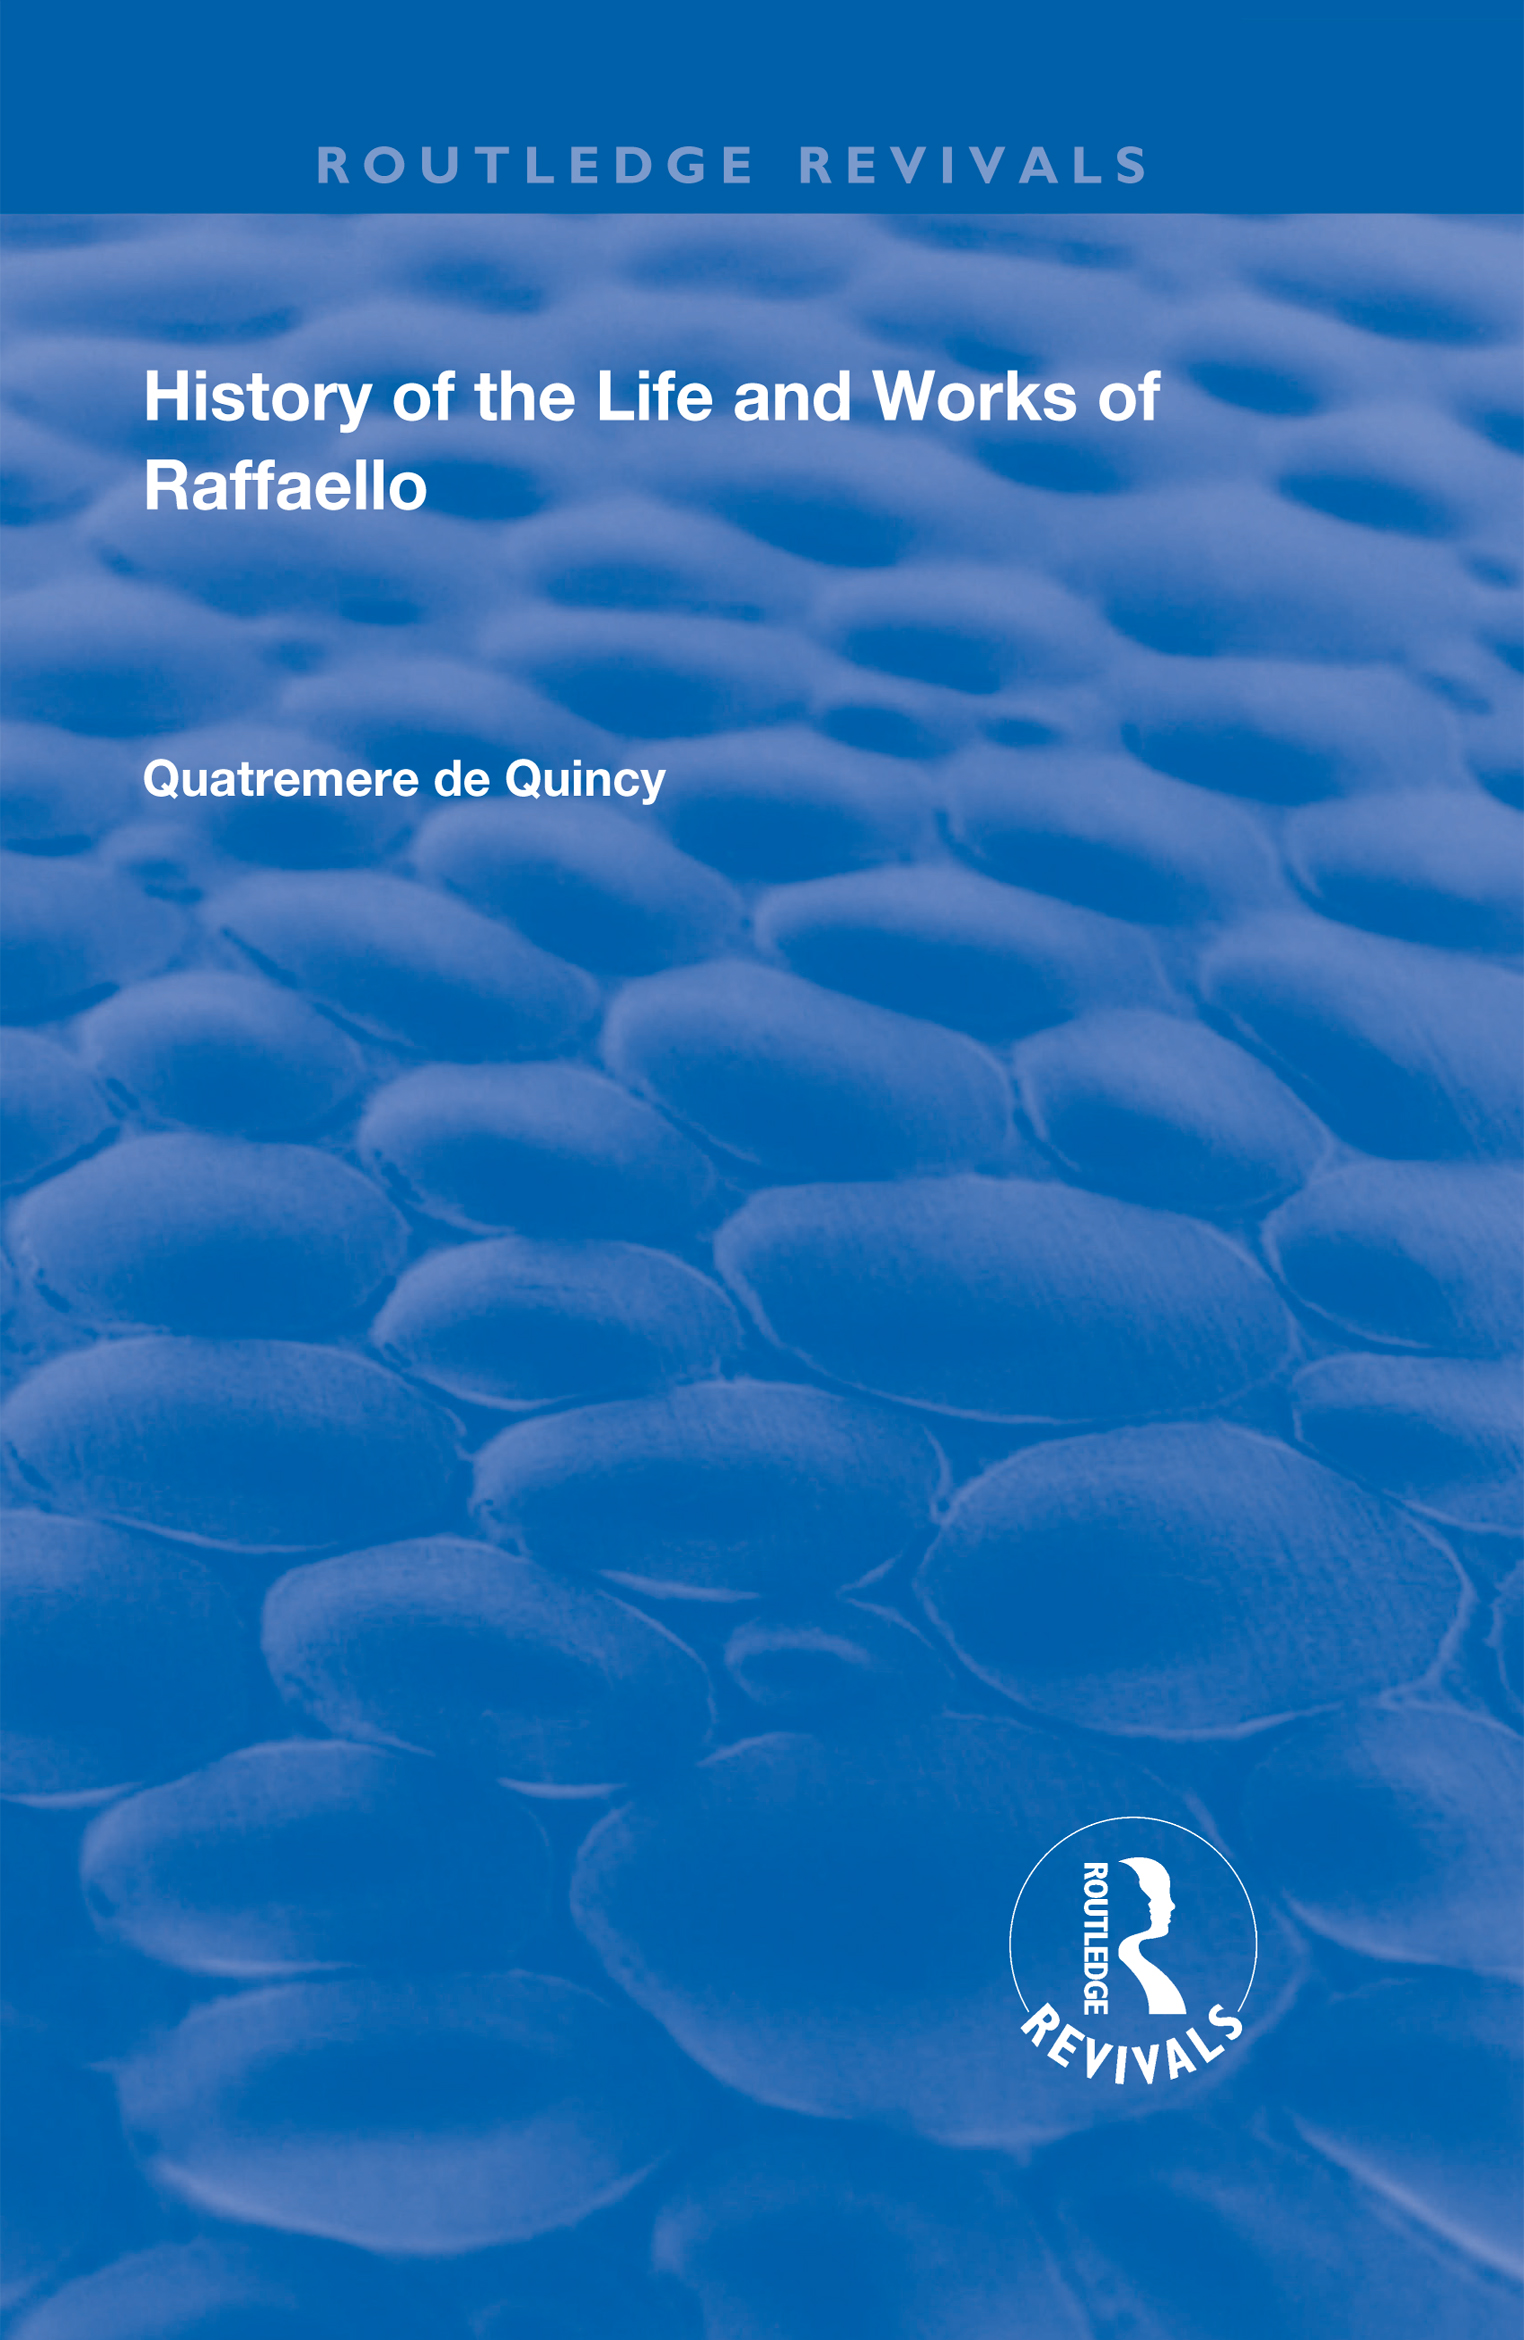 History of the Life and Works of Raffaello